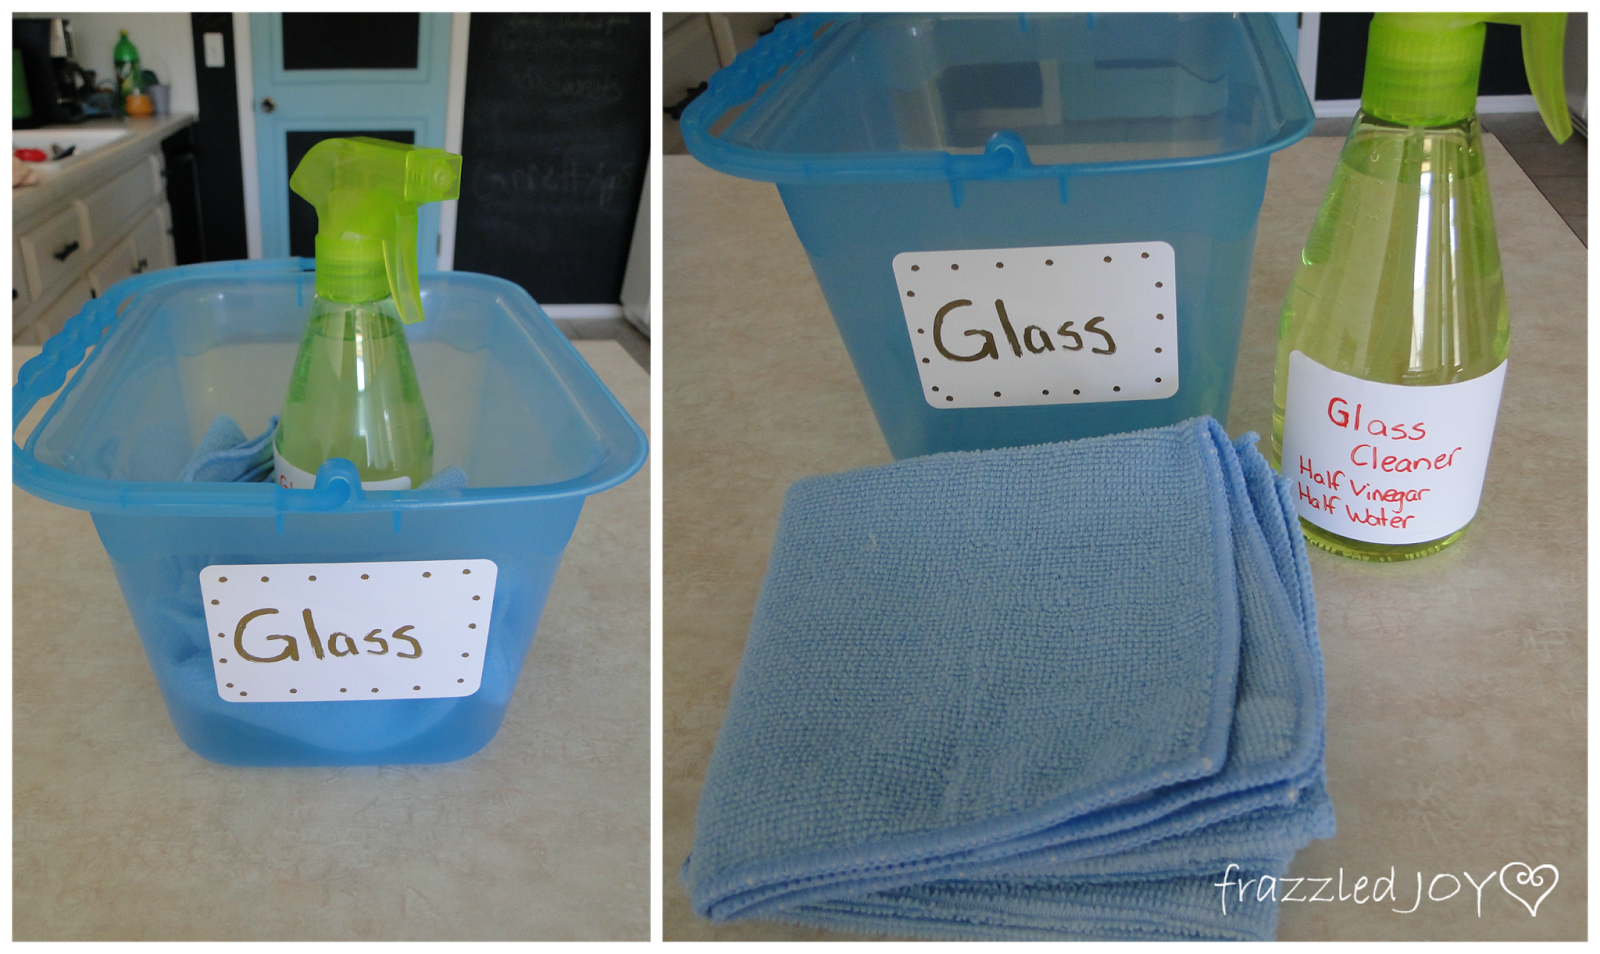 glass cleaner and supplies stored together